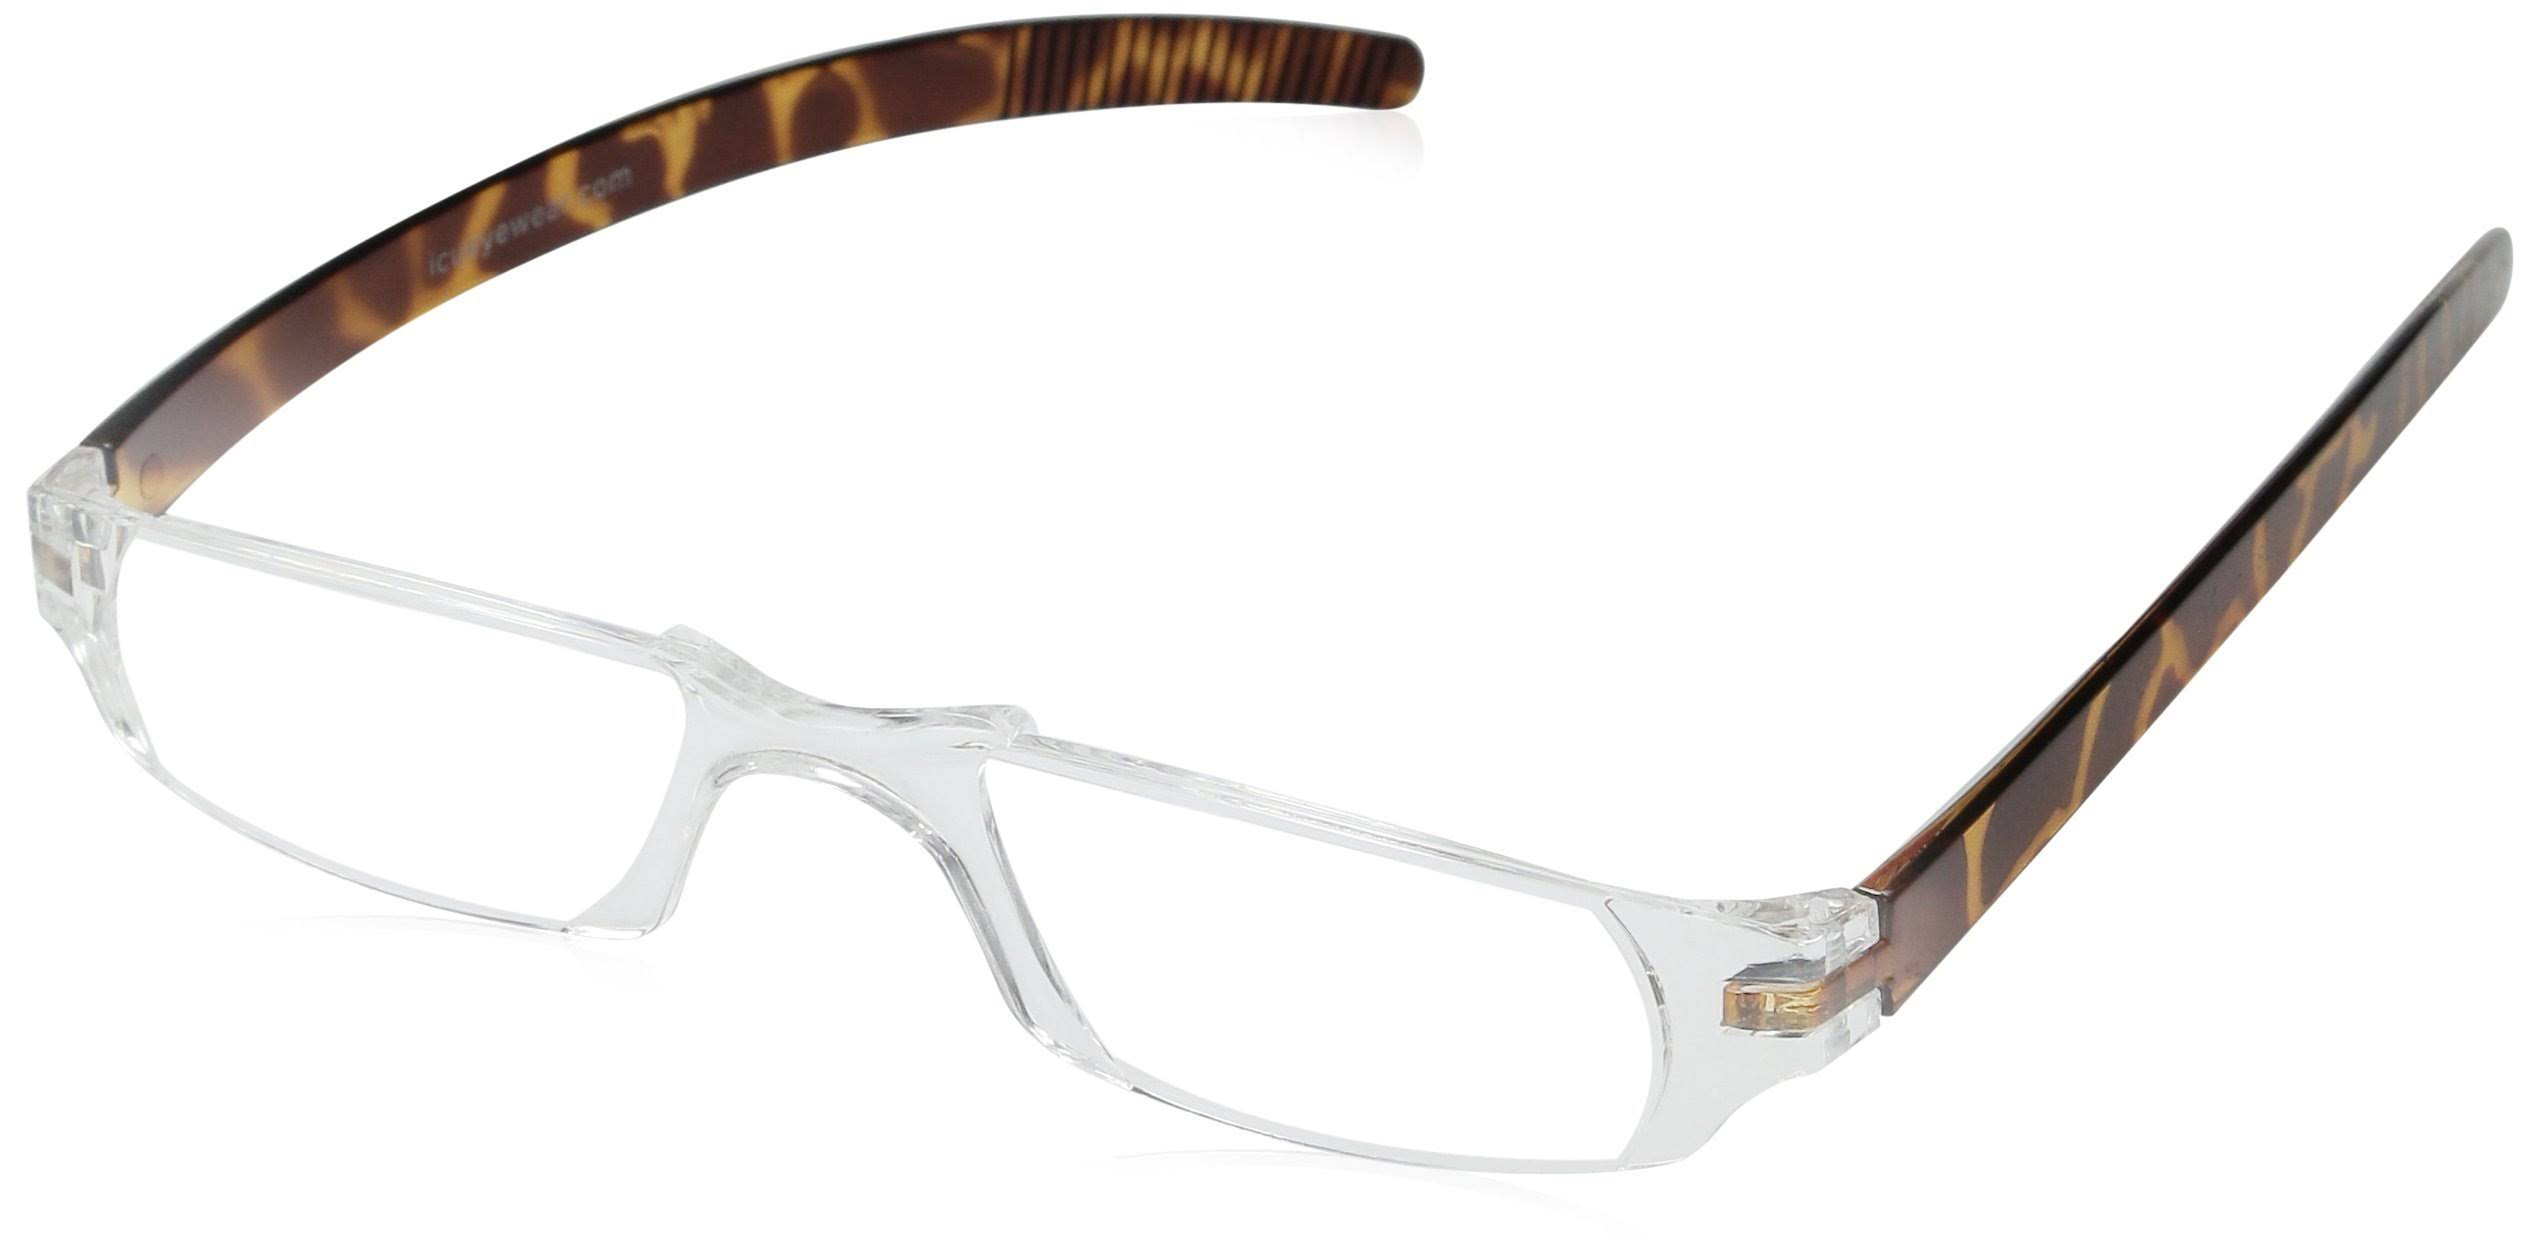 Dr. Dean Edell Slim Vision Reading Glasses - Tortoise, Plus 2.00